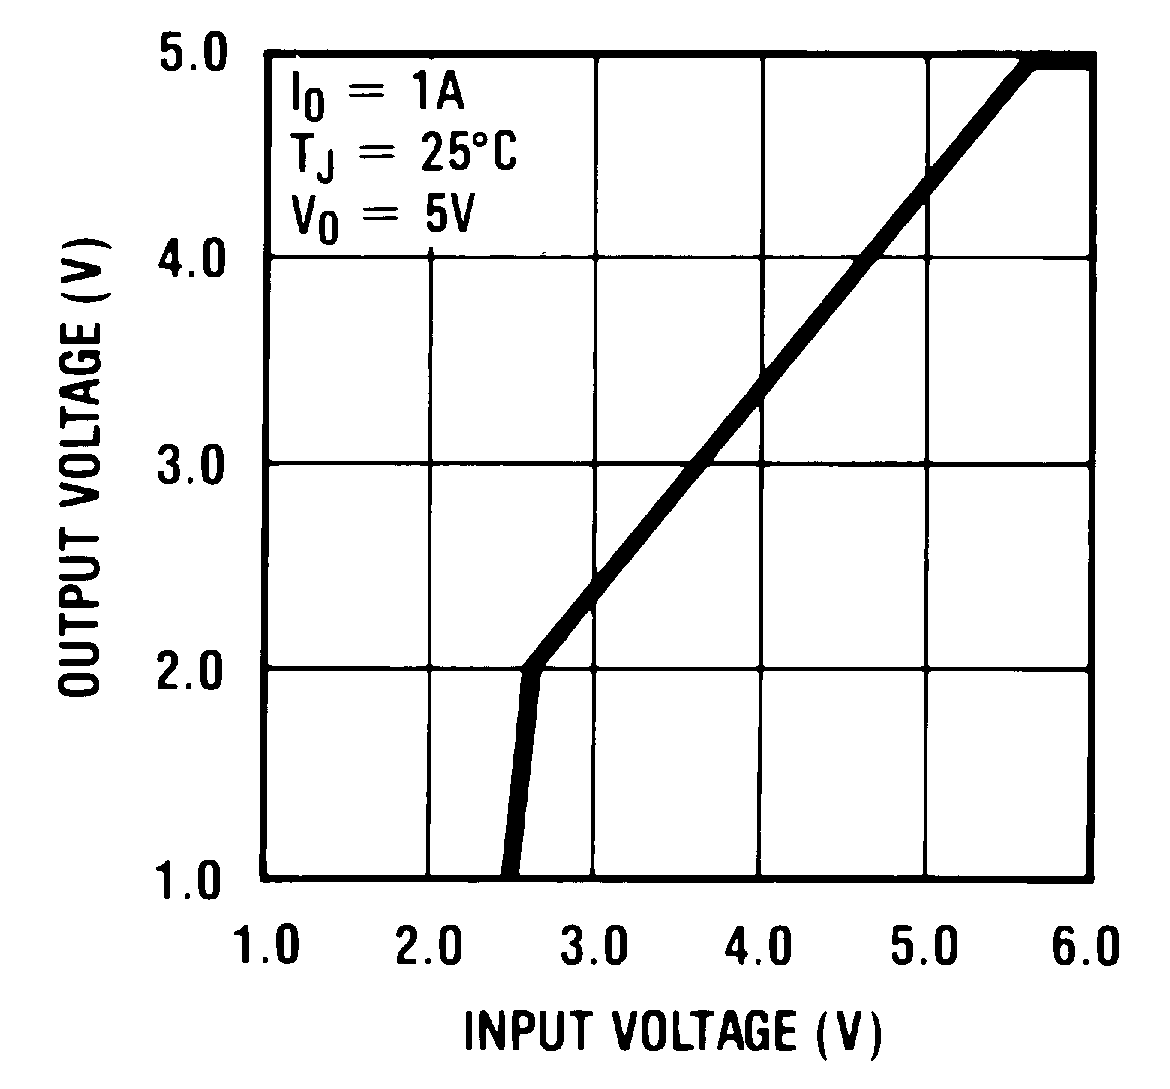 Lm2941 The Current Is Determined By Formula Out V Vref R2 823 Application Curves